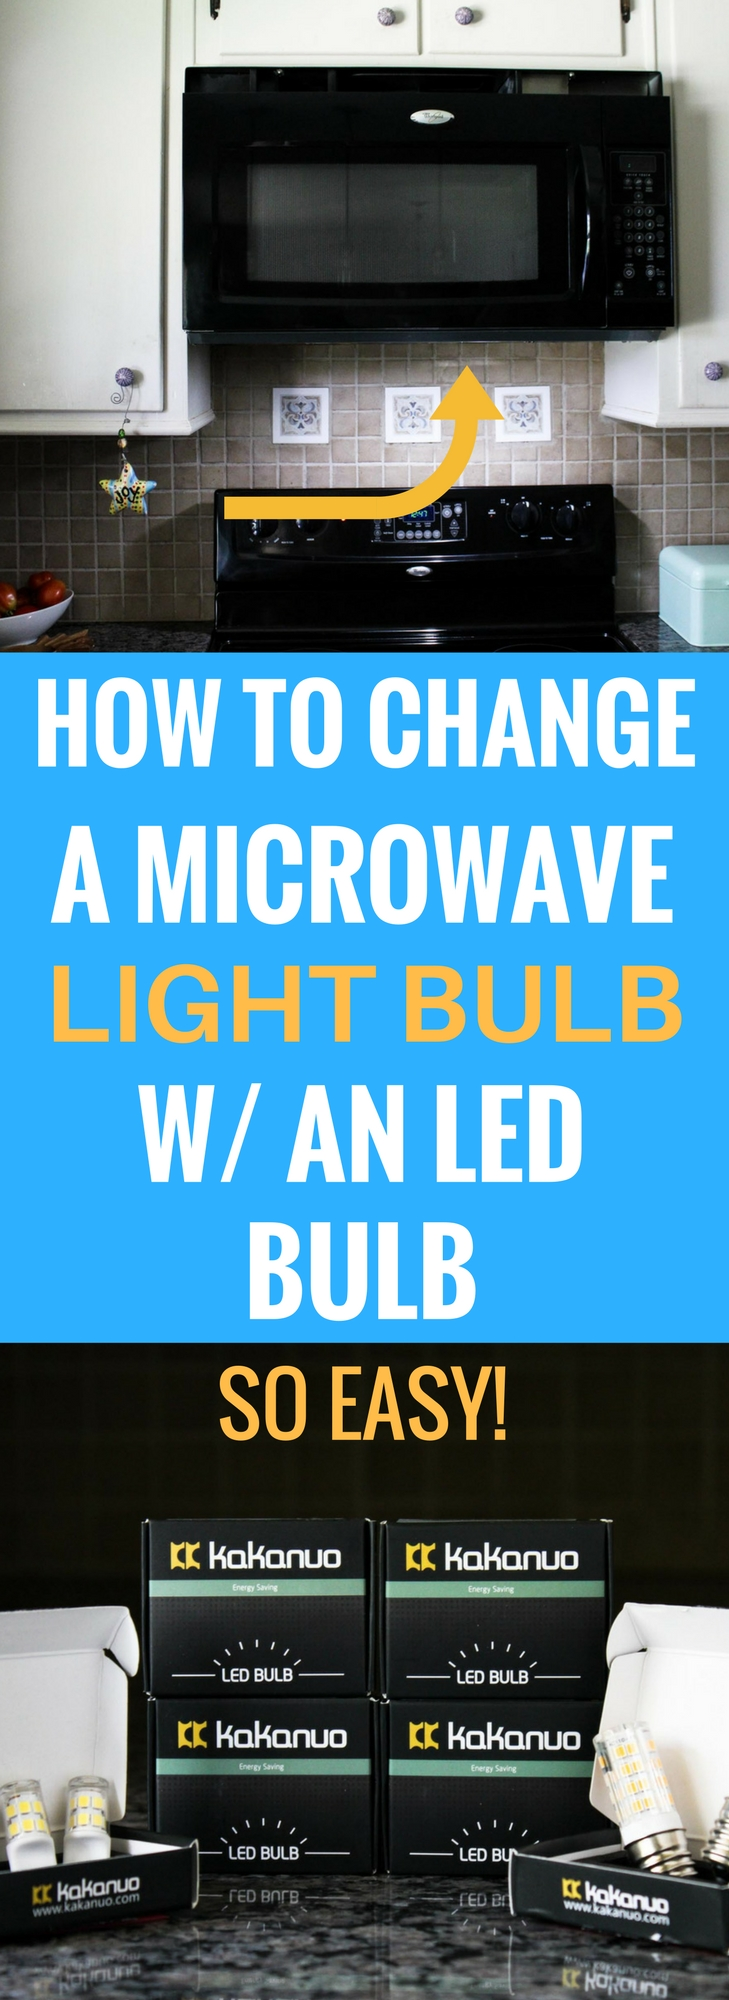 How to replace a microwave light bulb with an LED energy efficient bulb